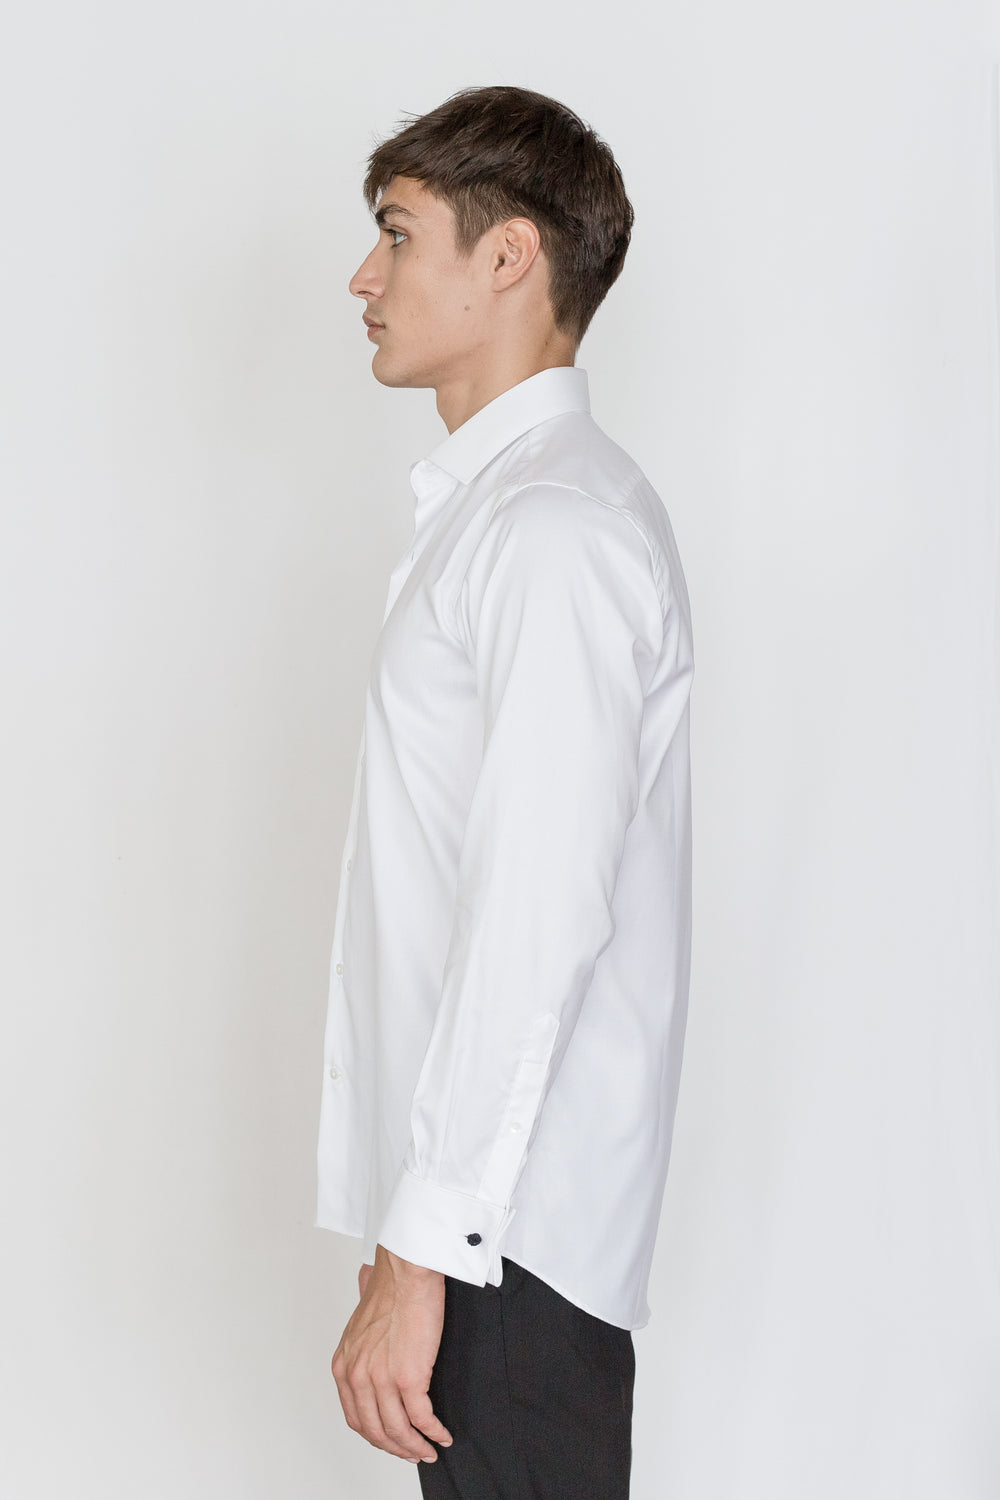 Mason Ward Aarhus White Oxford Fashion Fit/ Double Cuff Shirt